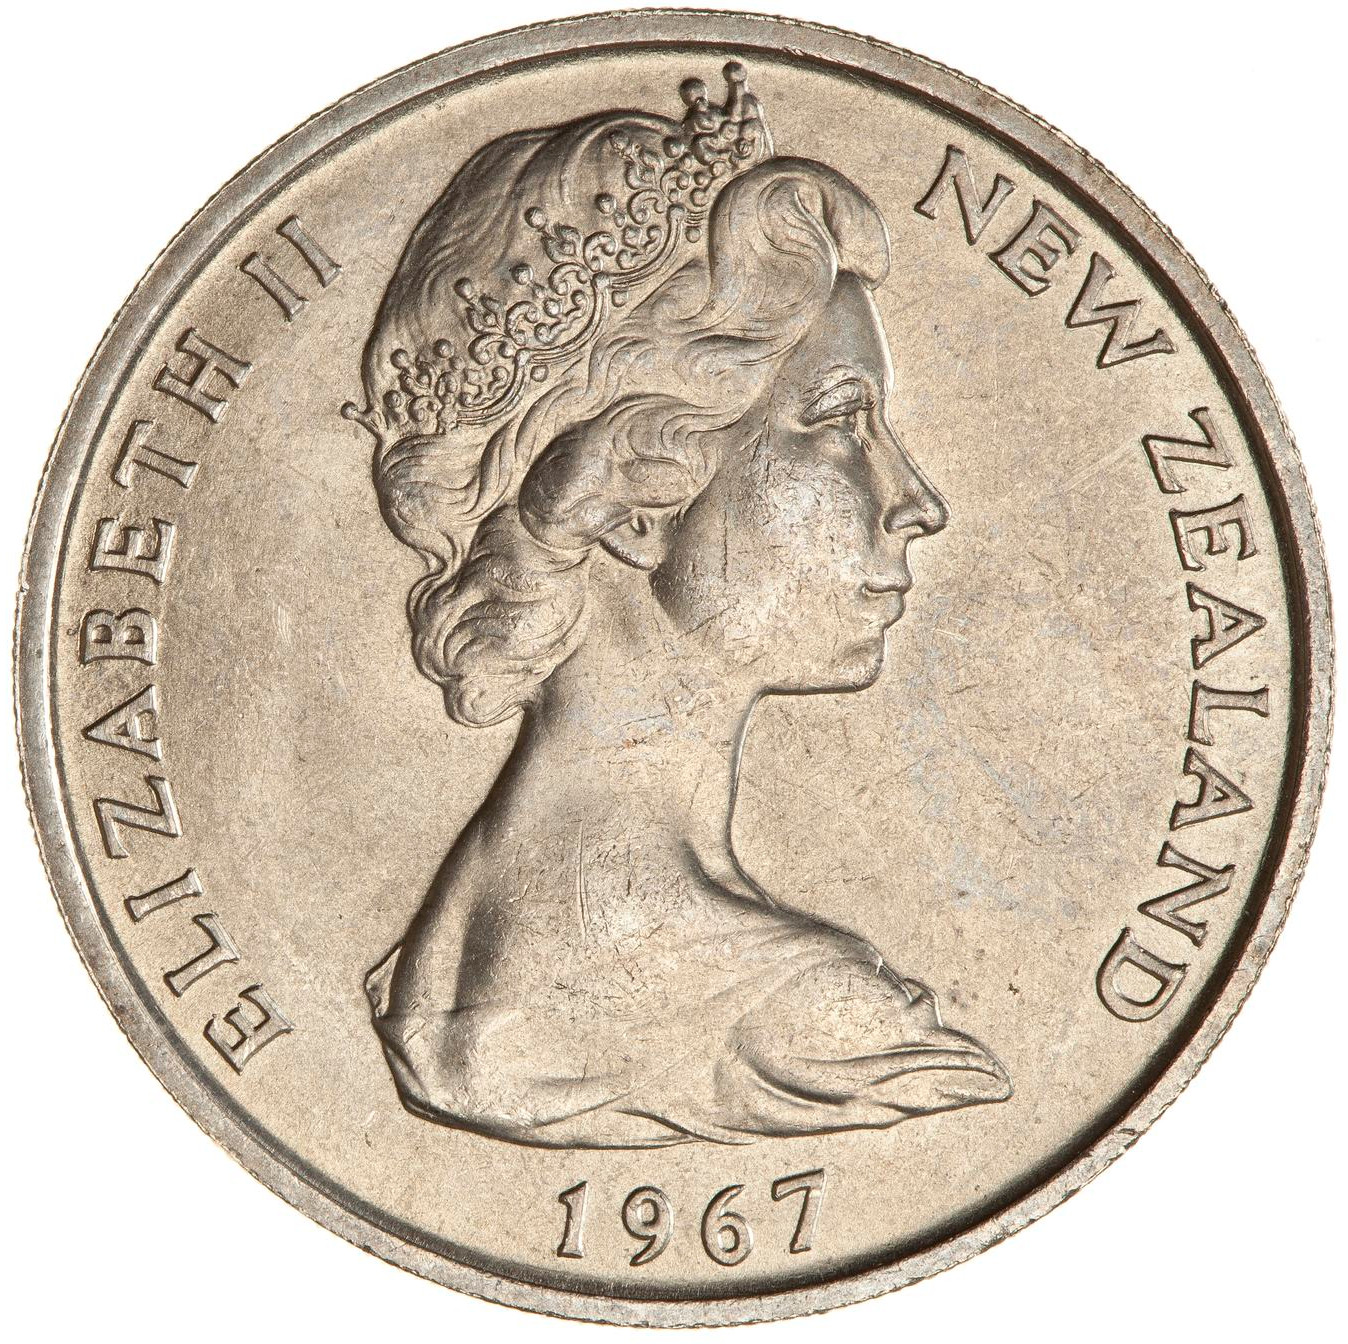 Twenty Cents: Photo Coin - 20 Cents, New Zealand, 1967